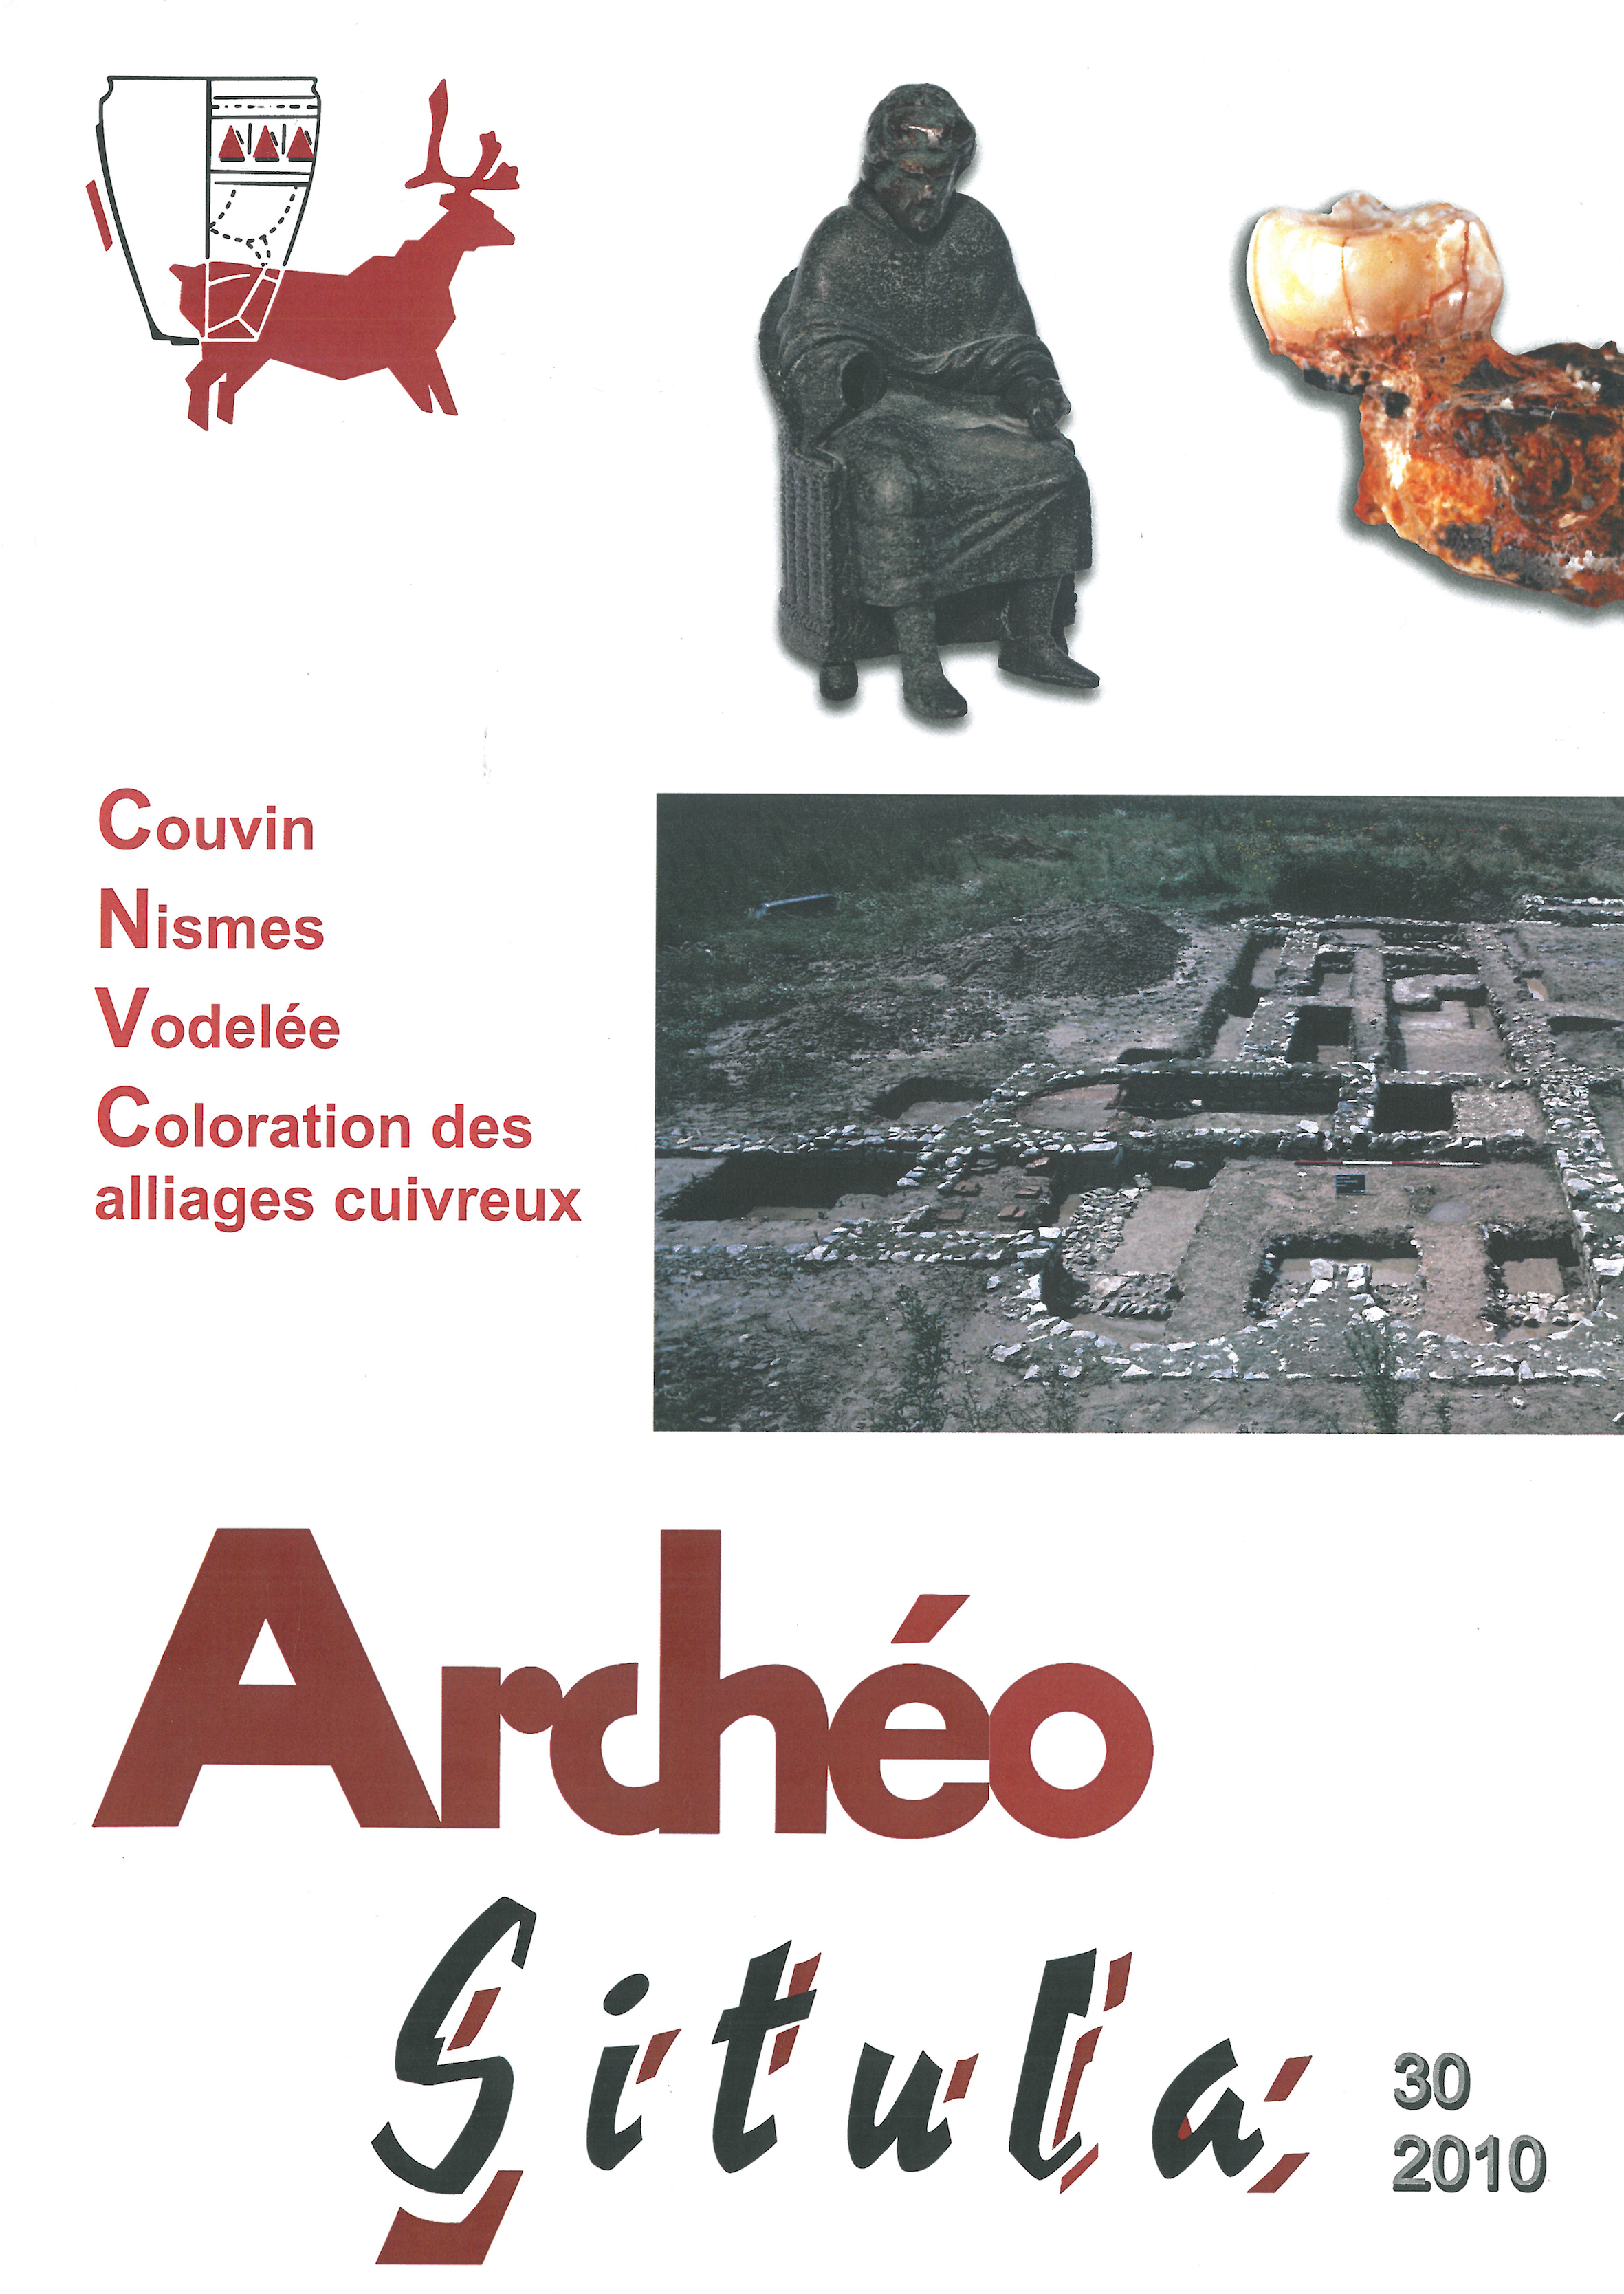 Archéo-Situla 30 – 2010